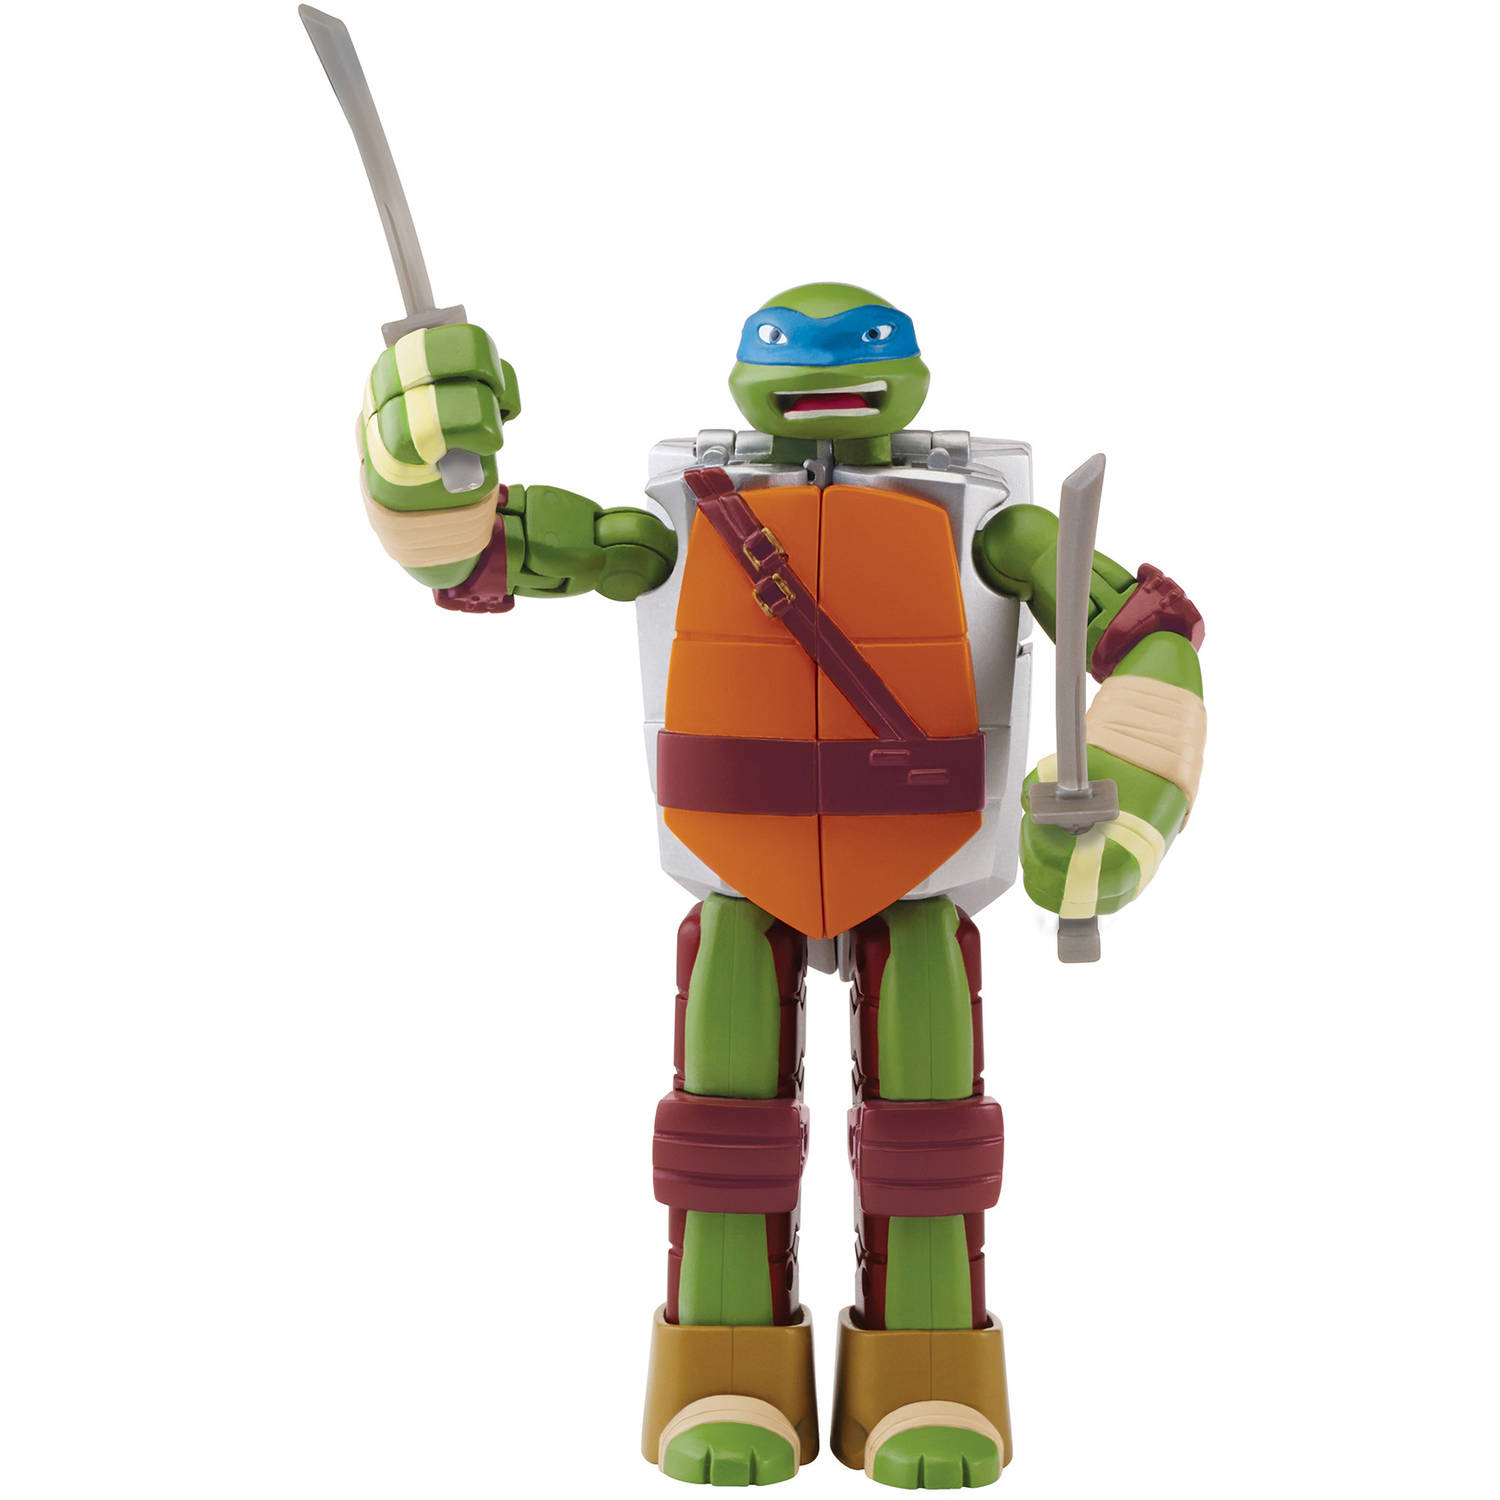 Teenage Mutant Ninja Turtles Mutations Figure to Weapon, Leonardo to Katana